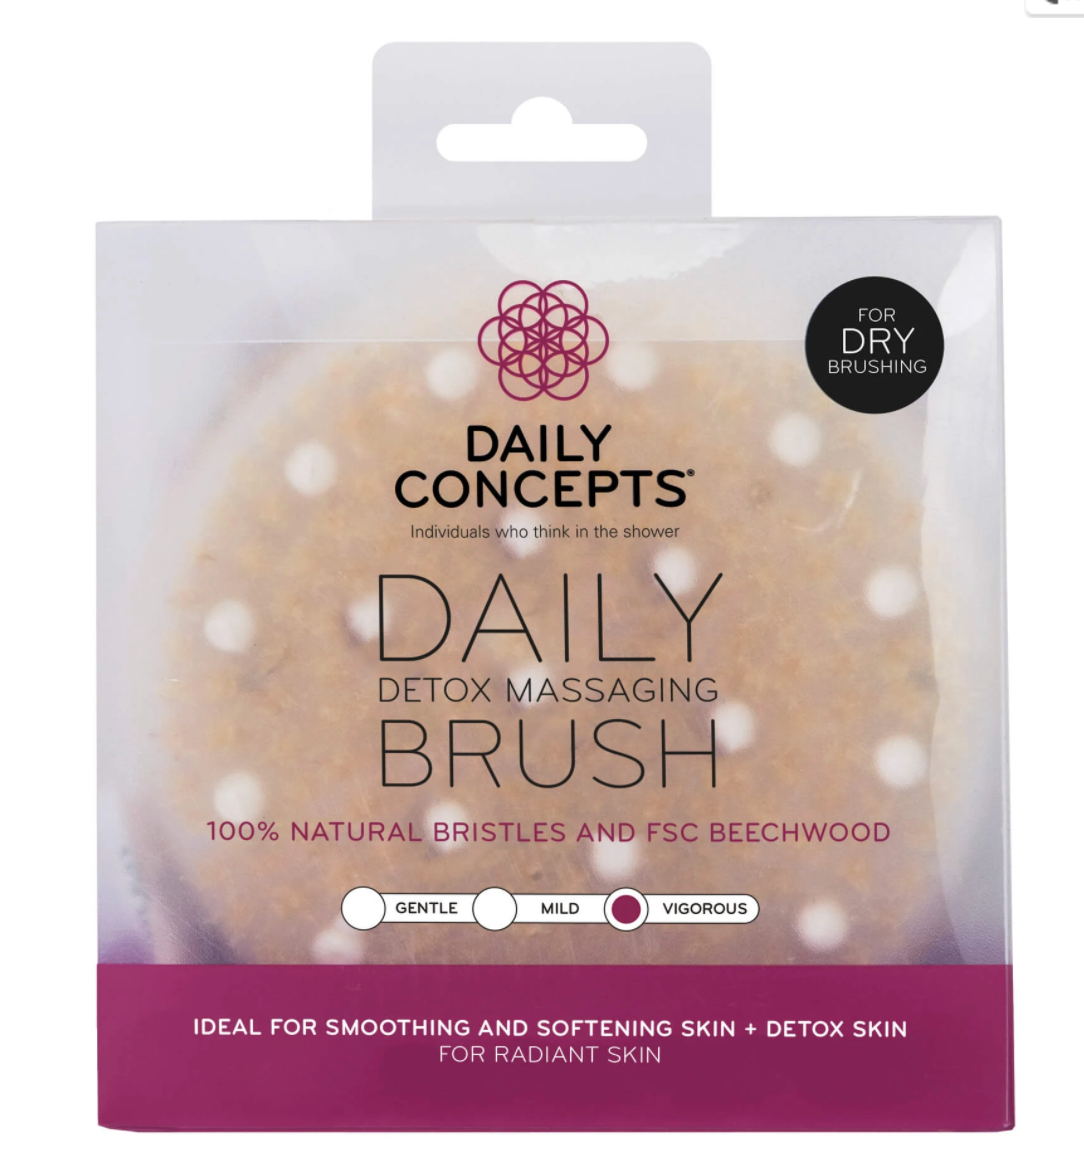 daily concepts, dry brush, massage brush, massaging brush, clean beauty, bare essentials